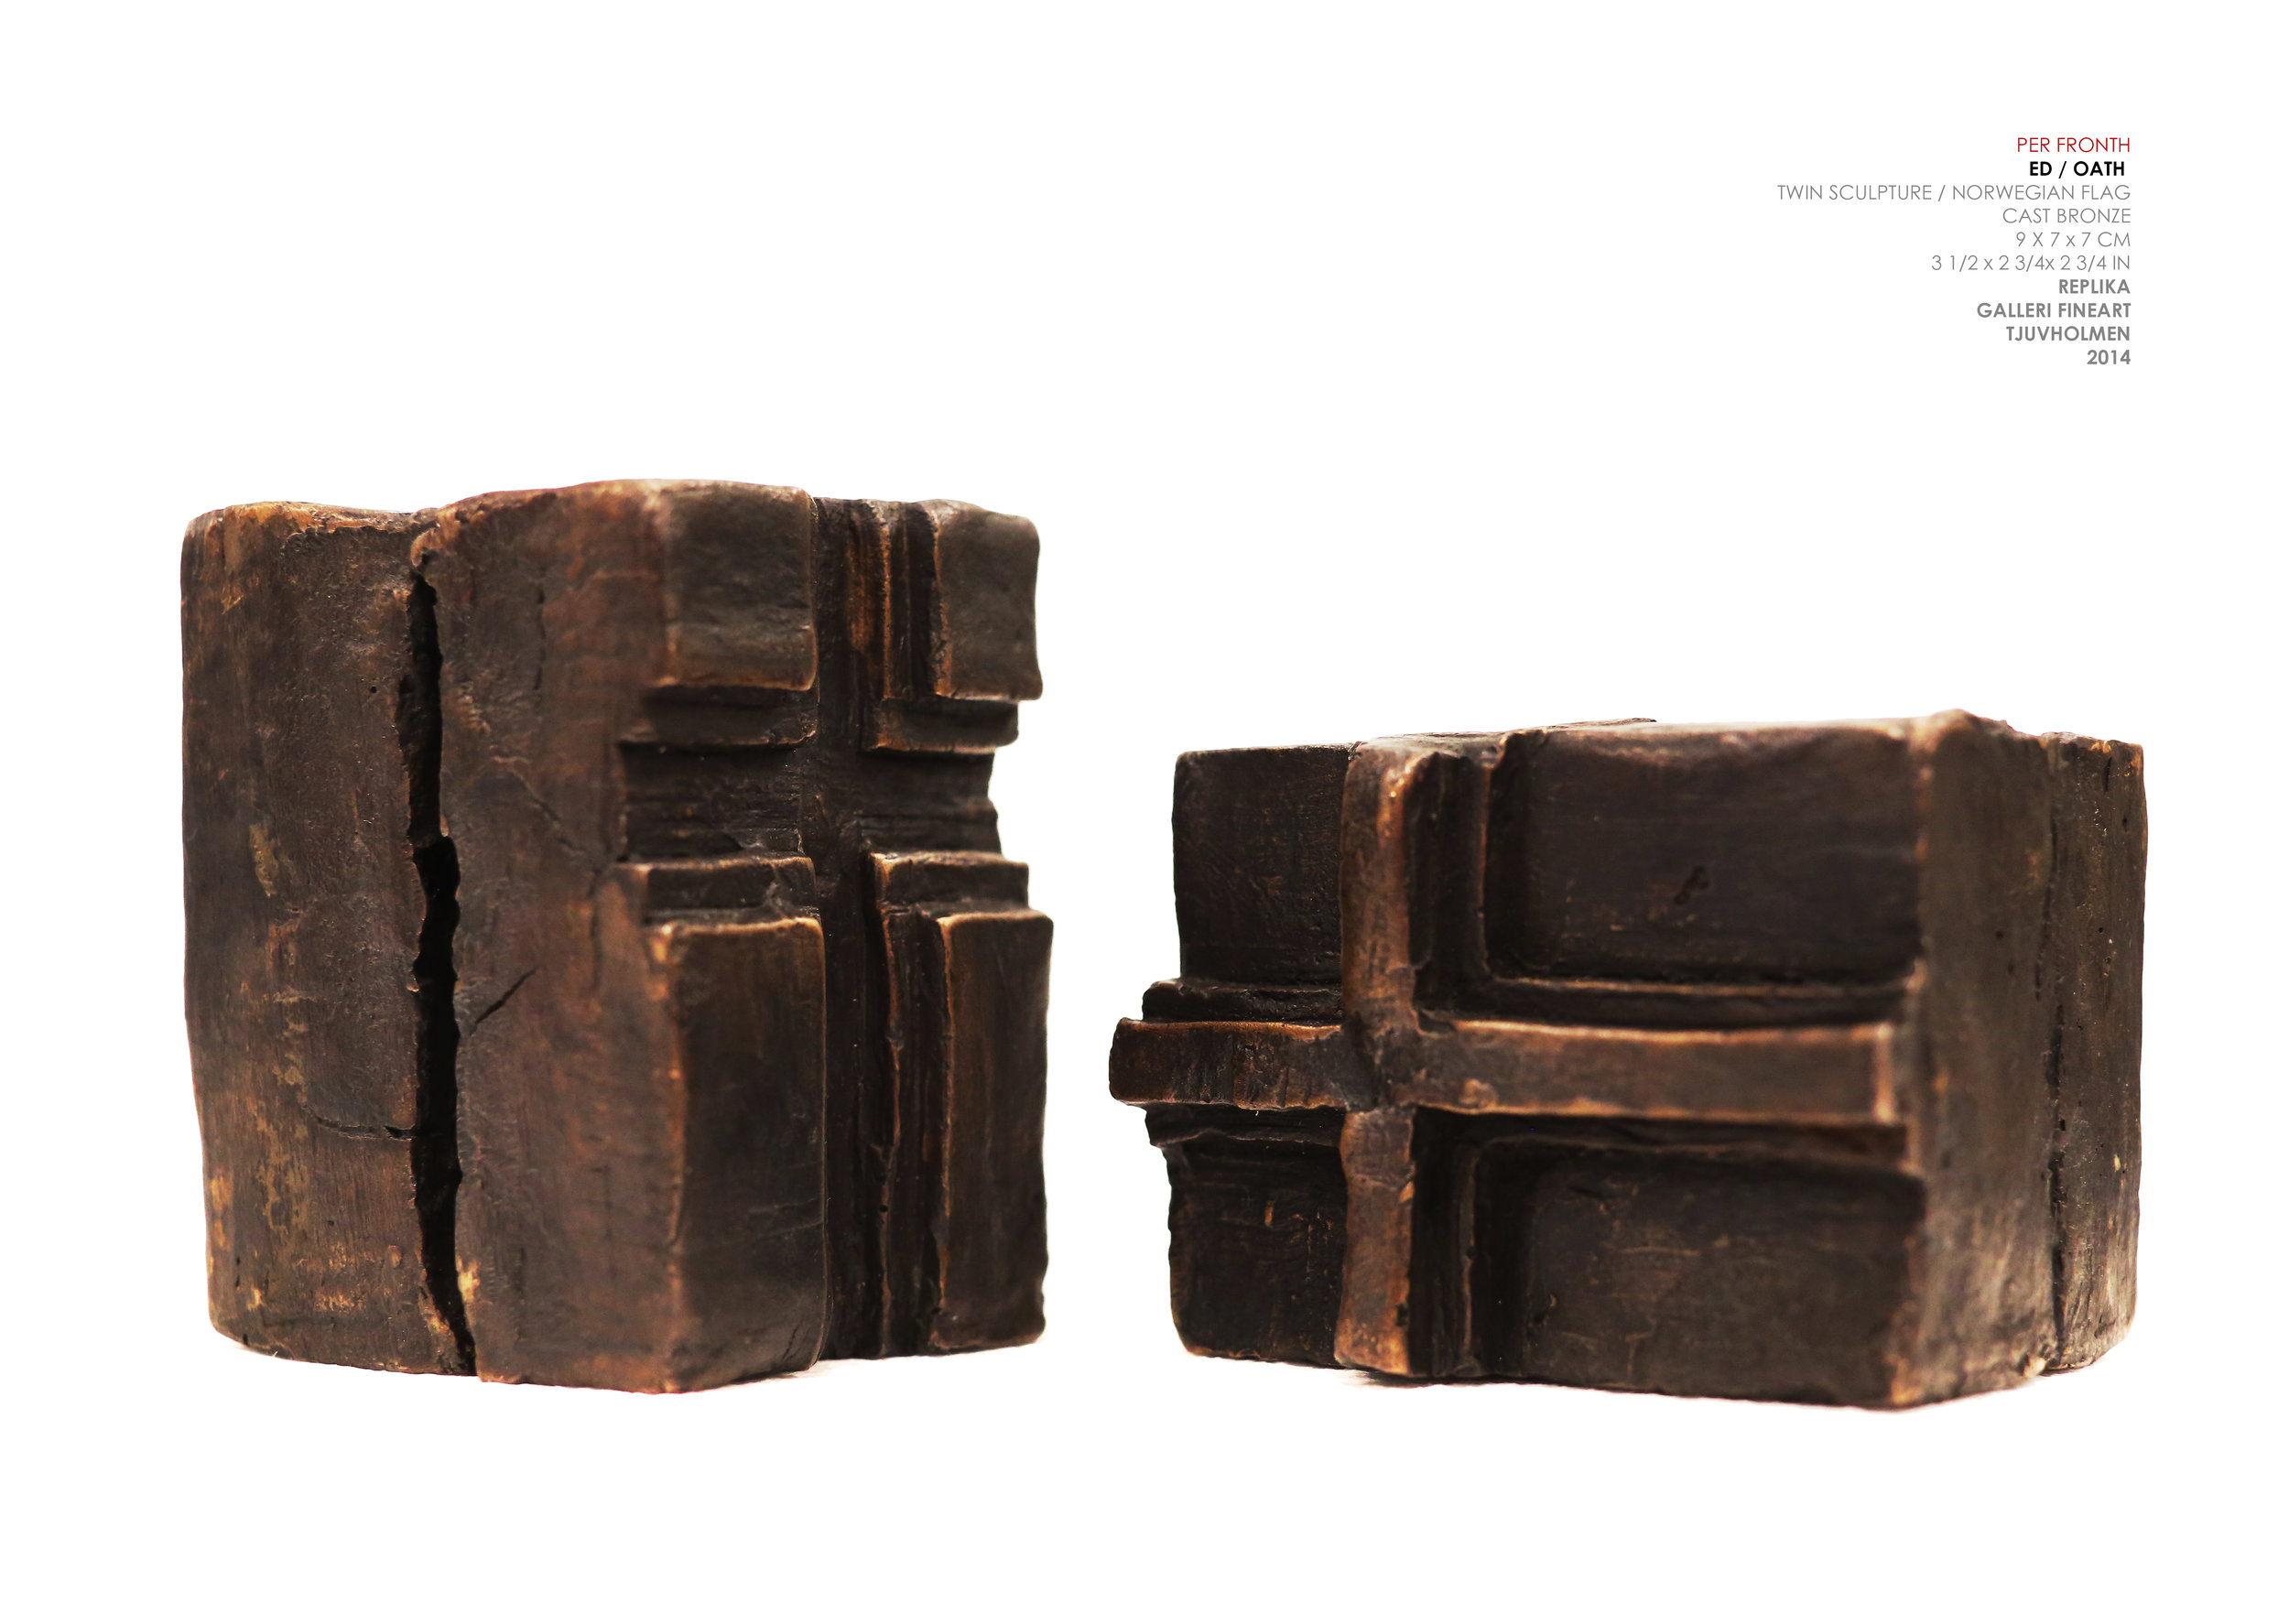 """Flag Sculpture """" ED """"  Cast Bronze 9 x 7 x 7 cm / 3.5 x 2.75 x 2.75 in Edition of 5 + 2 AP Collection of Stortinget / The Presidents Office"""